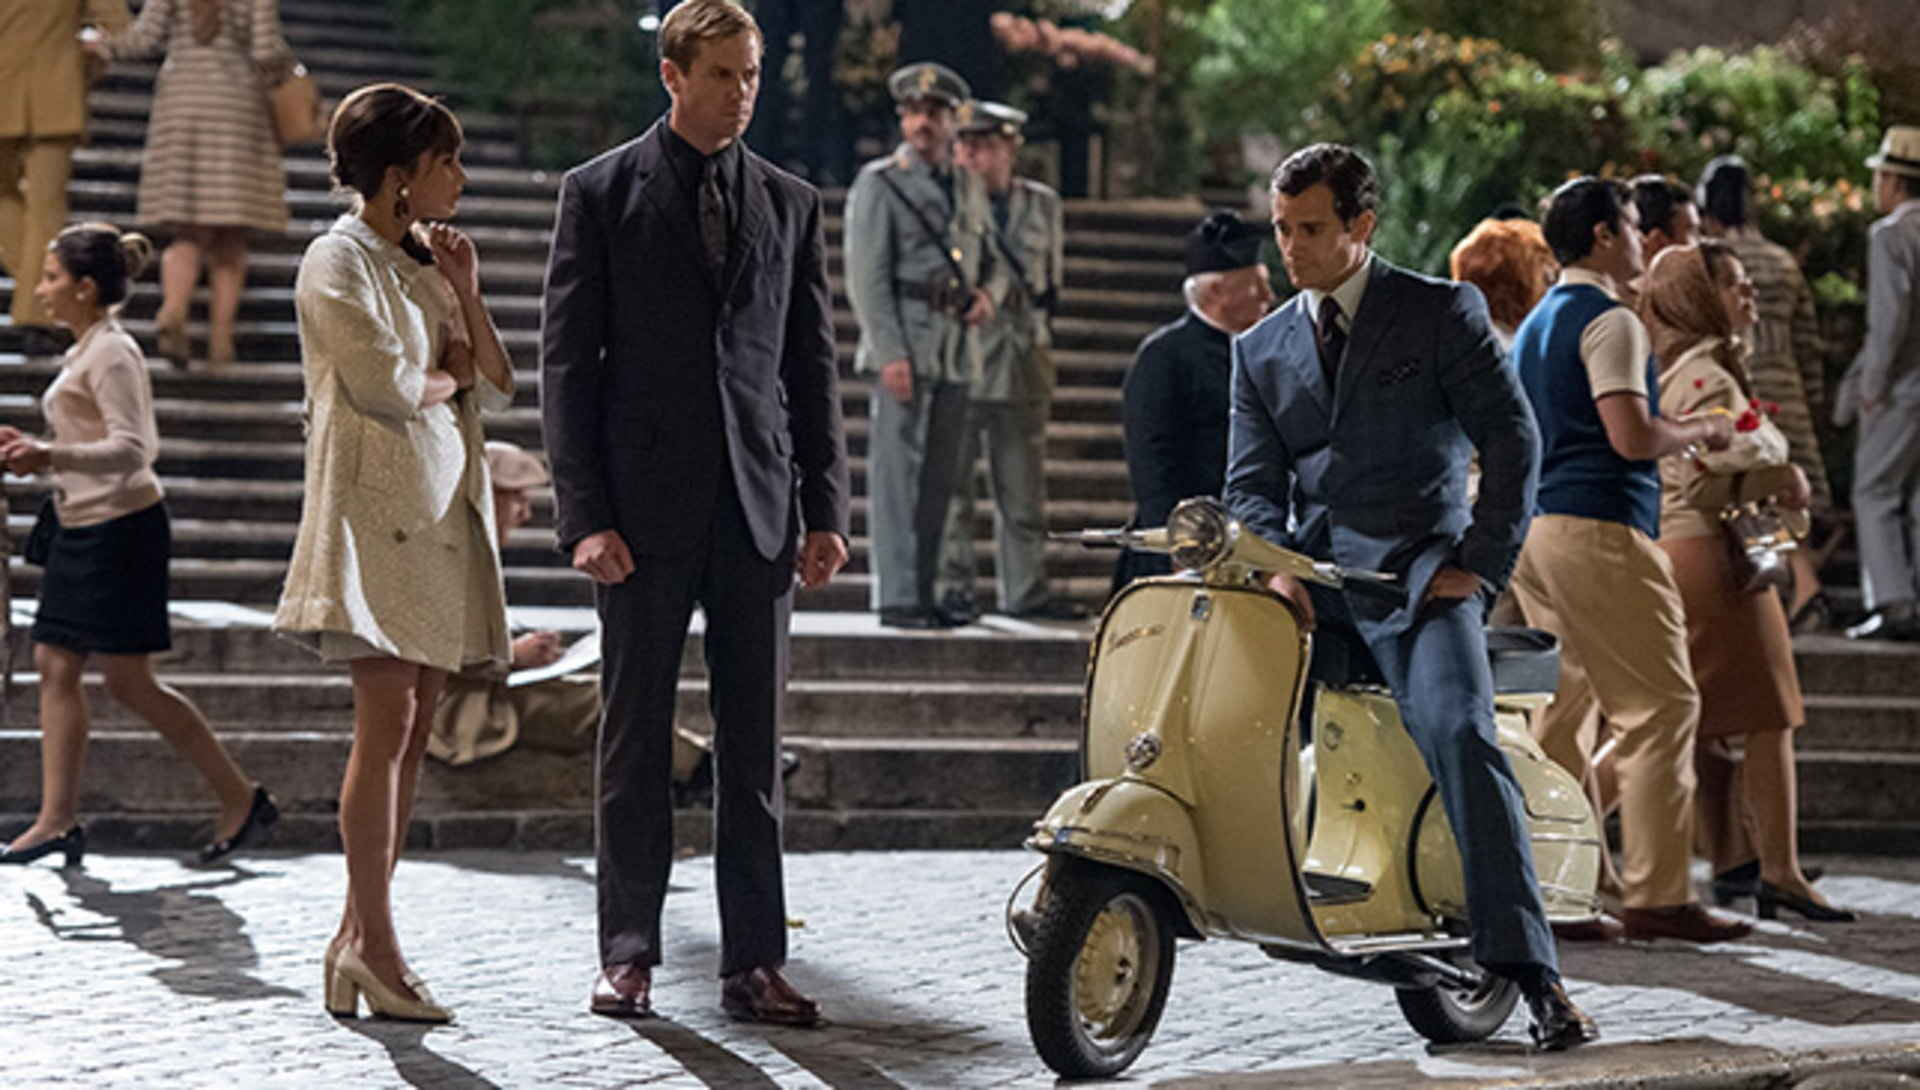 The Man From U.N.C.L.E. - Image 1